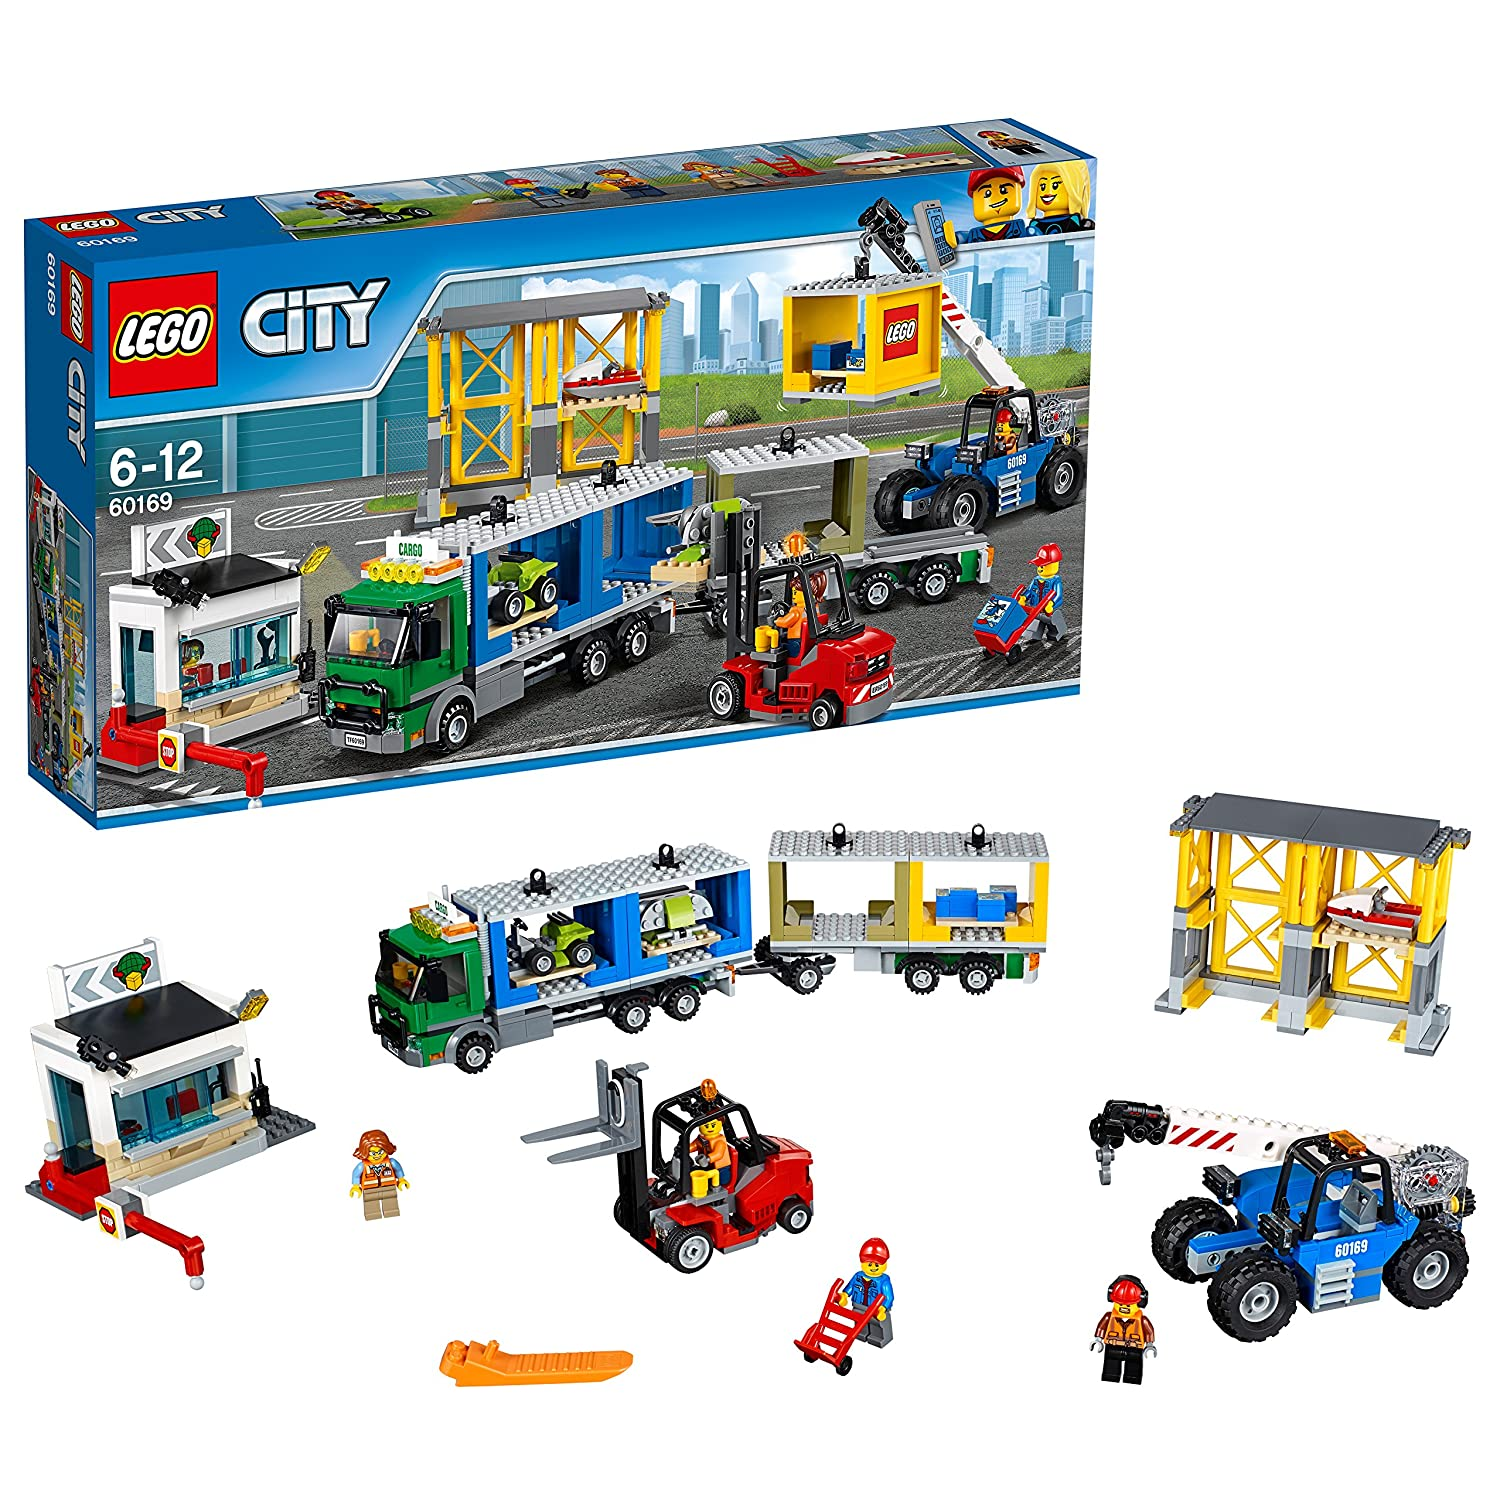 LEGO City Town Calendario de Adviento (6174567) 60155